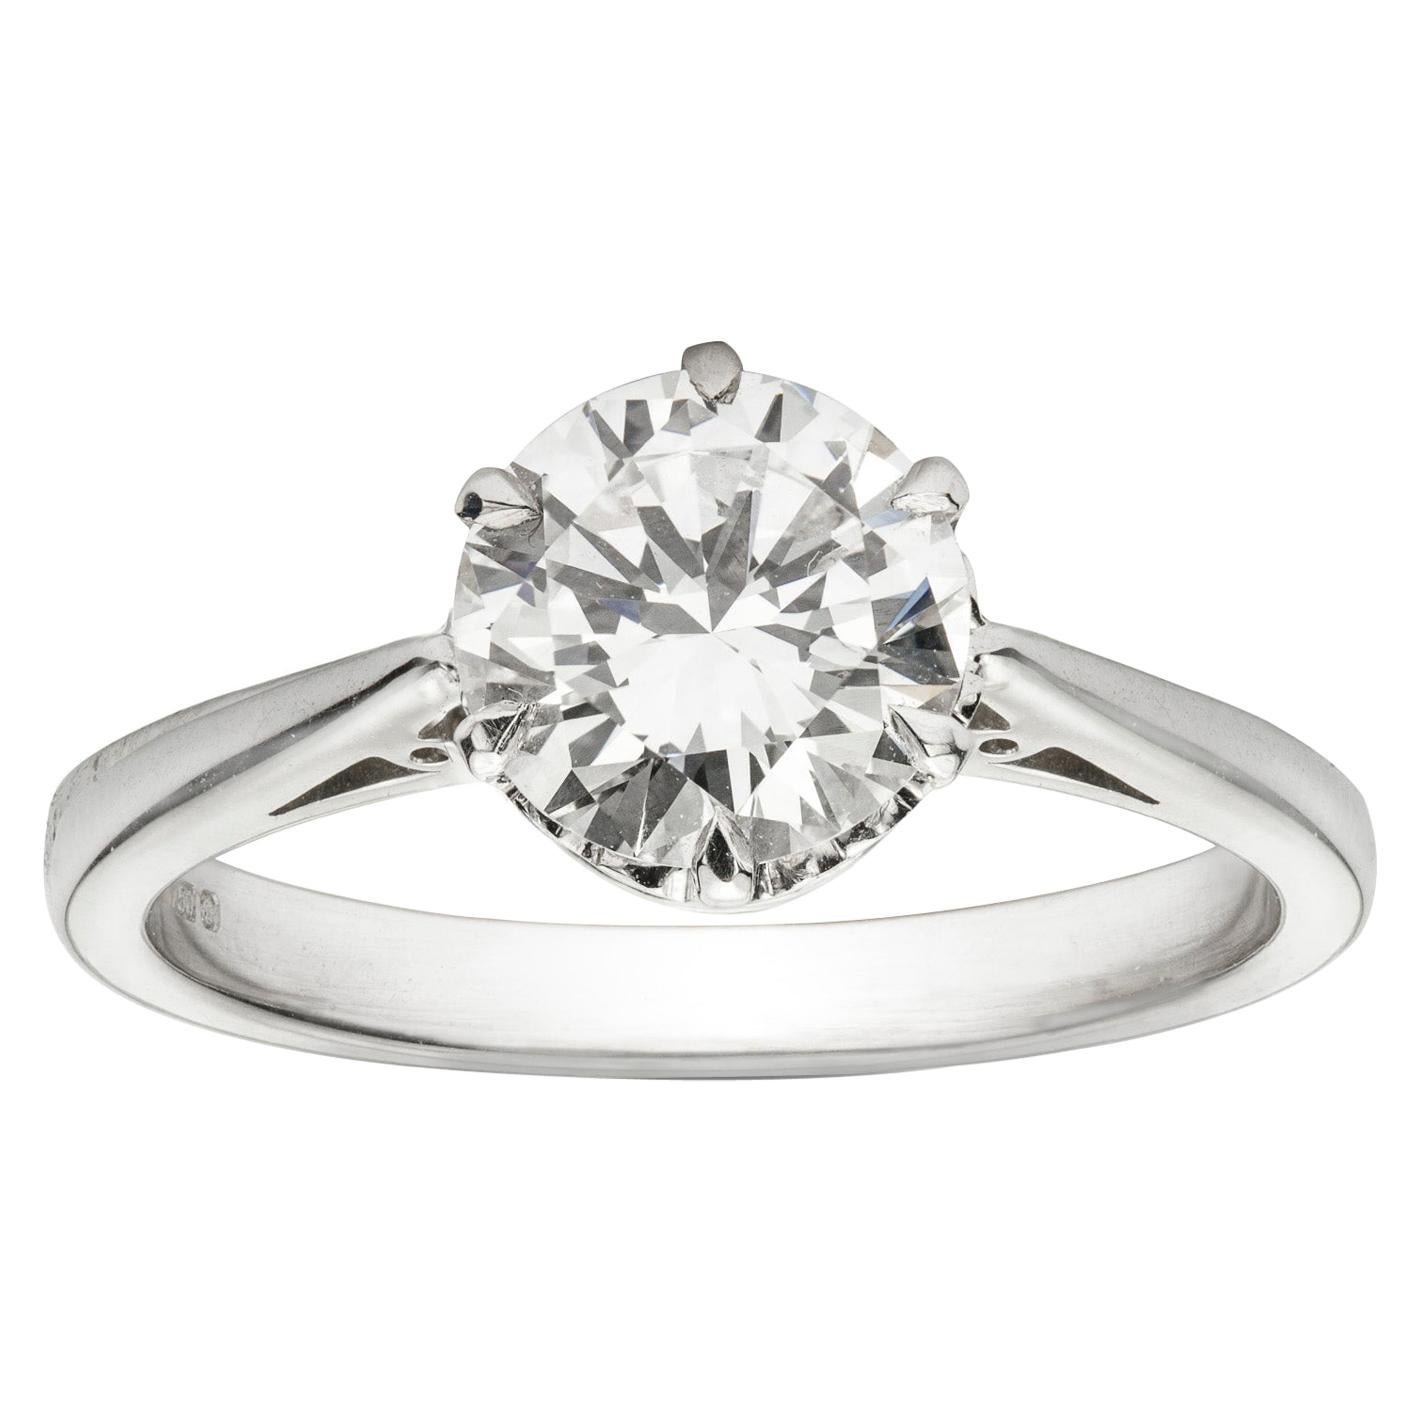 GIA Certified 1.51 Carat Solitaire Diamond Ring